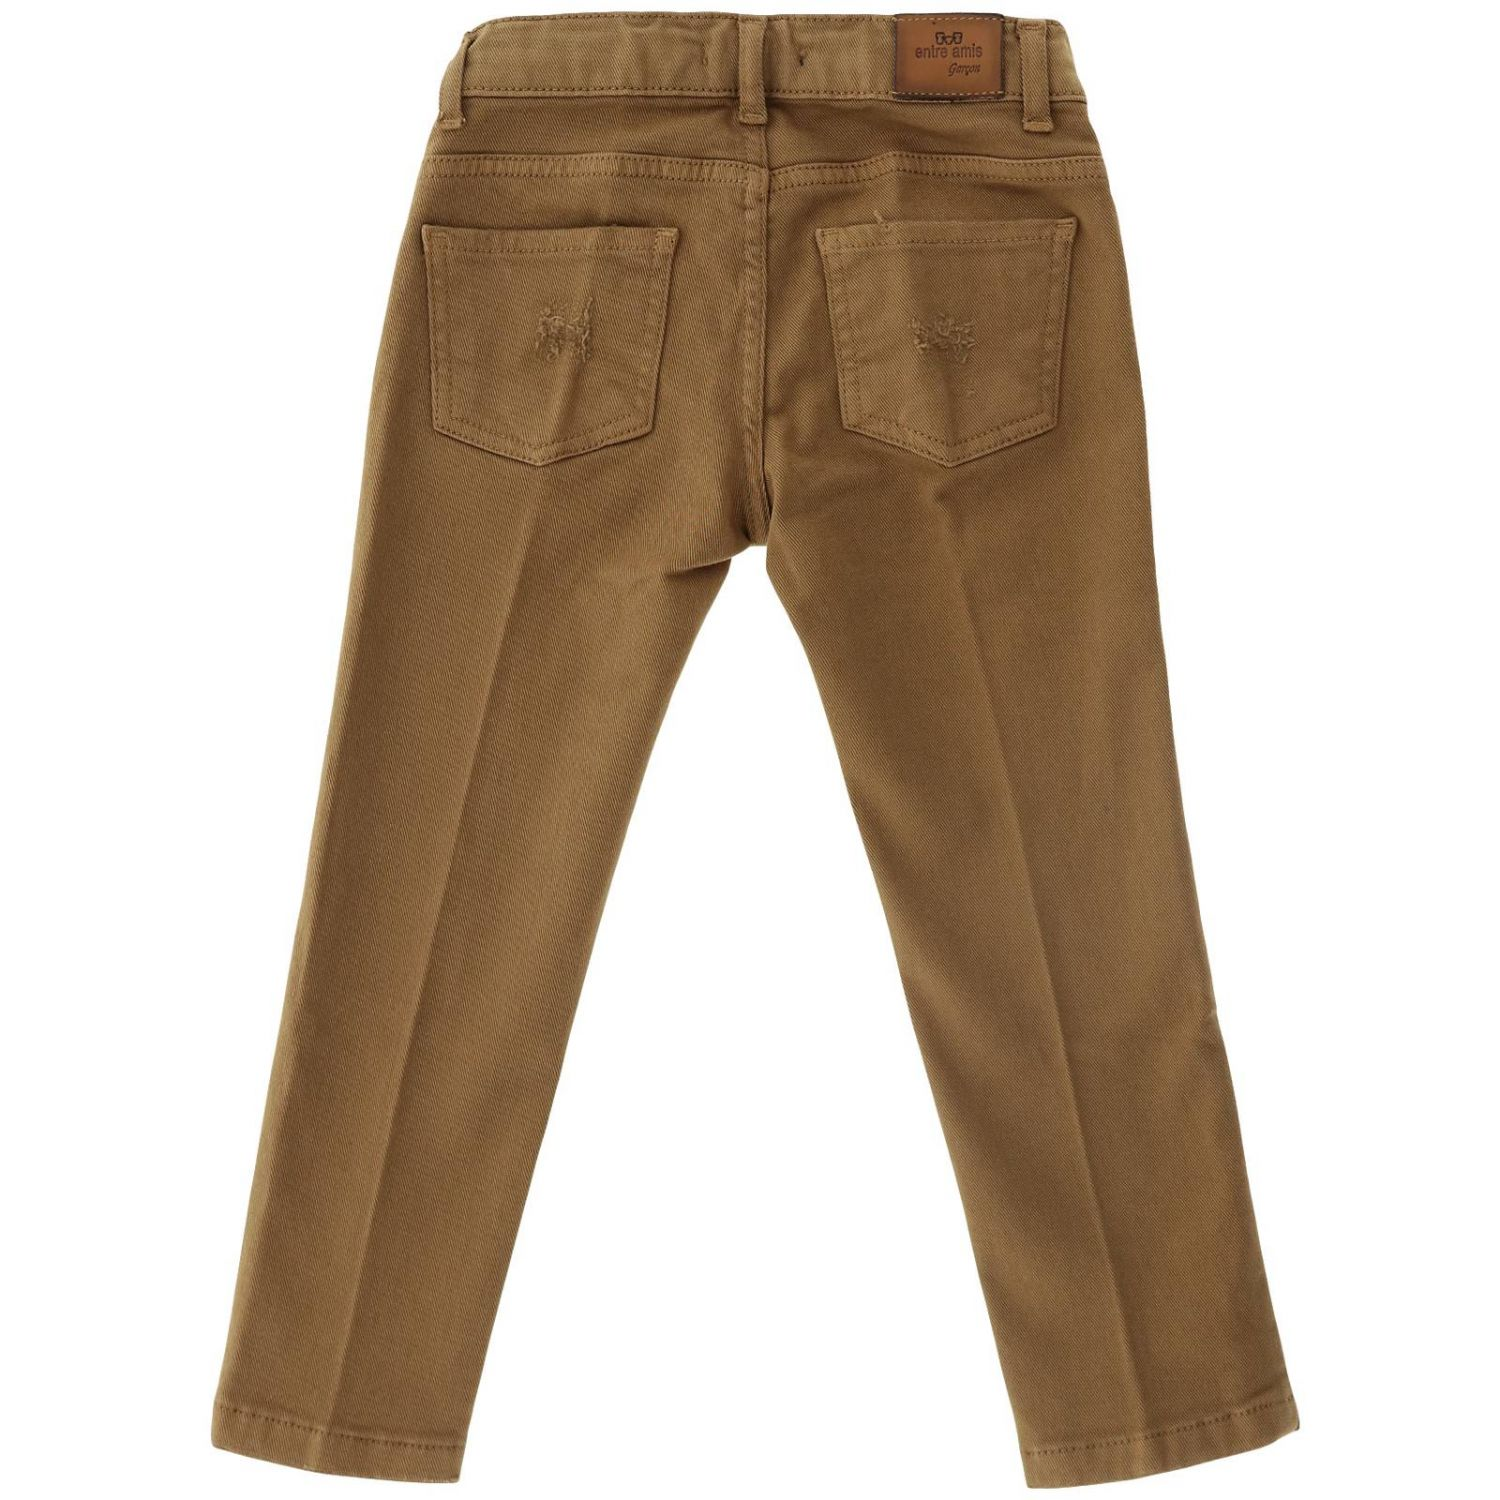 Trousers kids Entre Amis tobacco 2